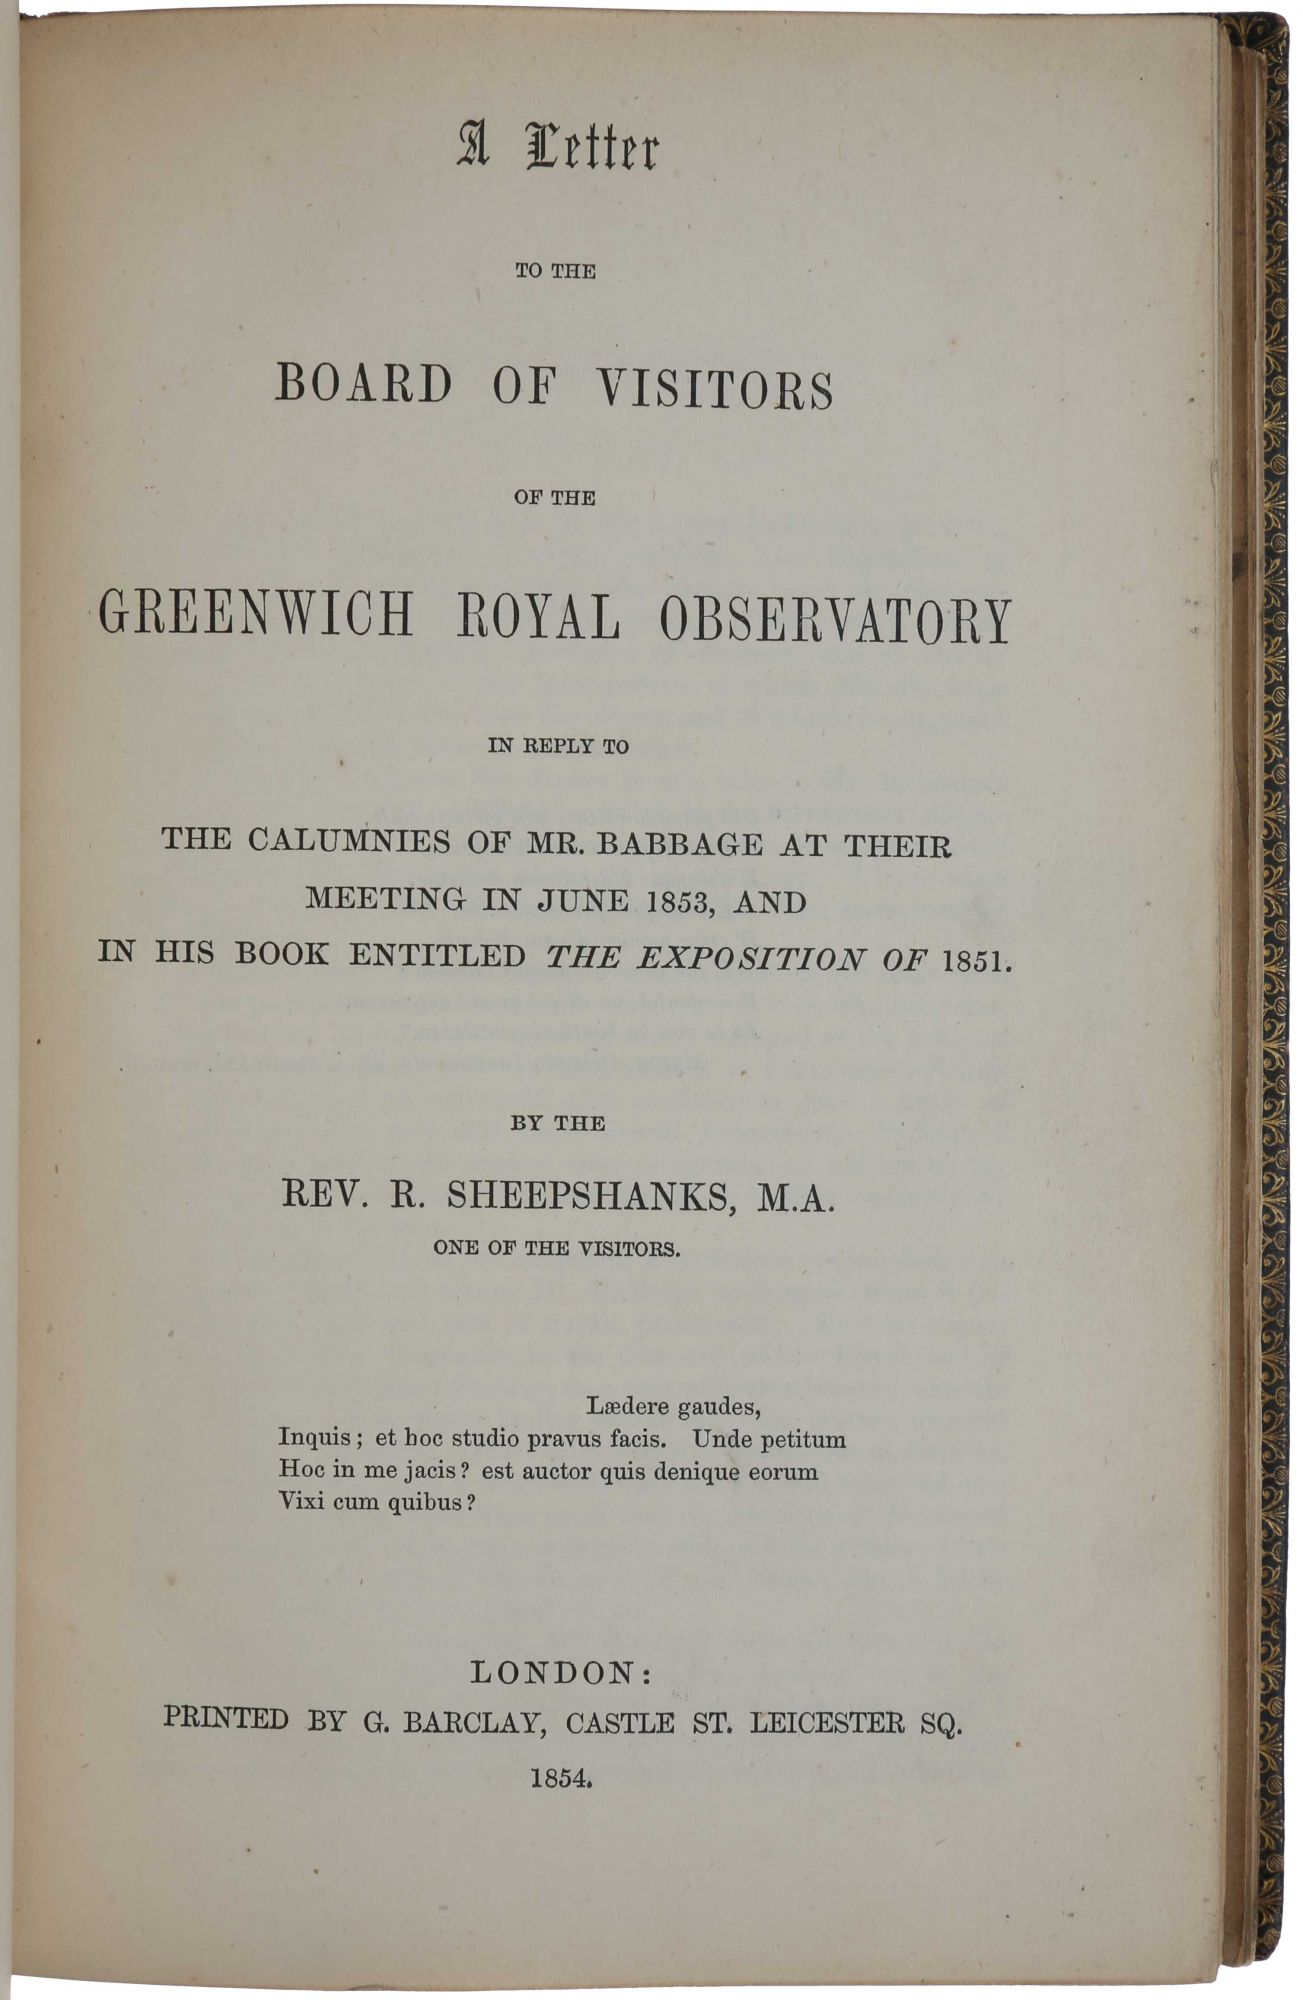 "A Letter to the Board of Visitors of the Greenwich Royal Observatory in reply to the calumnies of Mr. Babbage. London: G. Barclay, 1860. [Bound with:] A Letter to the Board of Visitors of the Greenwich Royal Observatory in reply to the calumnies of Mr. Babbage at their meeting in June 1853 and in his book entitled The Exposition of 1851. London: G. Barclay, 1854 [And with:] Correspondence respecting the Liverpool Observatory [- Supplement]. London: G. Barclay, 1845. [And with:] A Reply to Mr Babbage's Letter to ""The Times,"" ""On the planet Neptune and the Royal Astronomical Society's Medal."" London: G. Barclay, 1847. [And with:] 'A Memoir of the late Rev. Richard Sheepshanks, M.A.' Offprint from Monthly Notices of the Royal Astronomical Society, Vol. XVI, No. 4. London: G. Barclay, 1856. Charles BABBAGE, Rev. Richard SHEEPSHANKS."